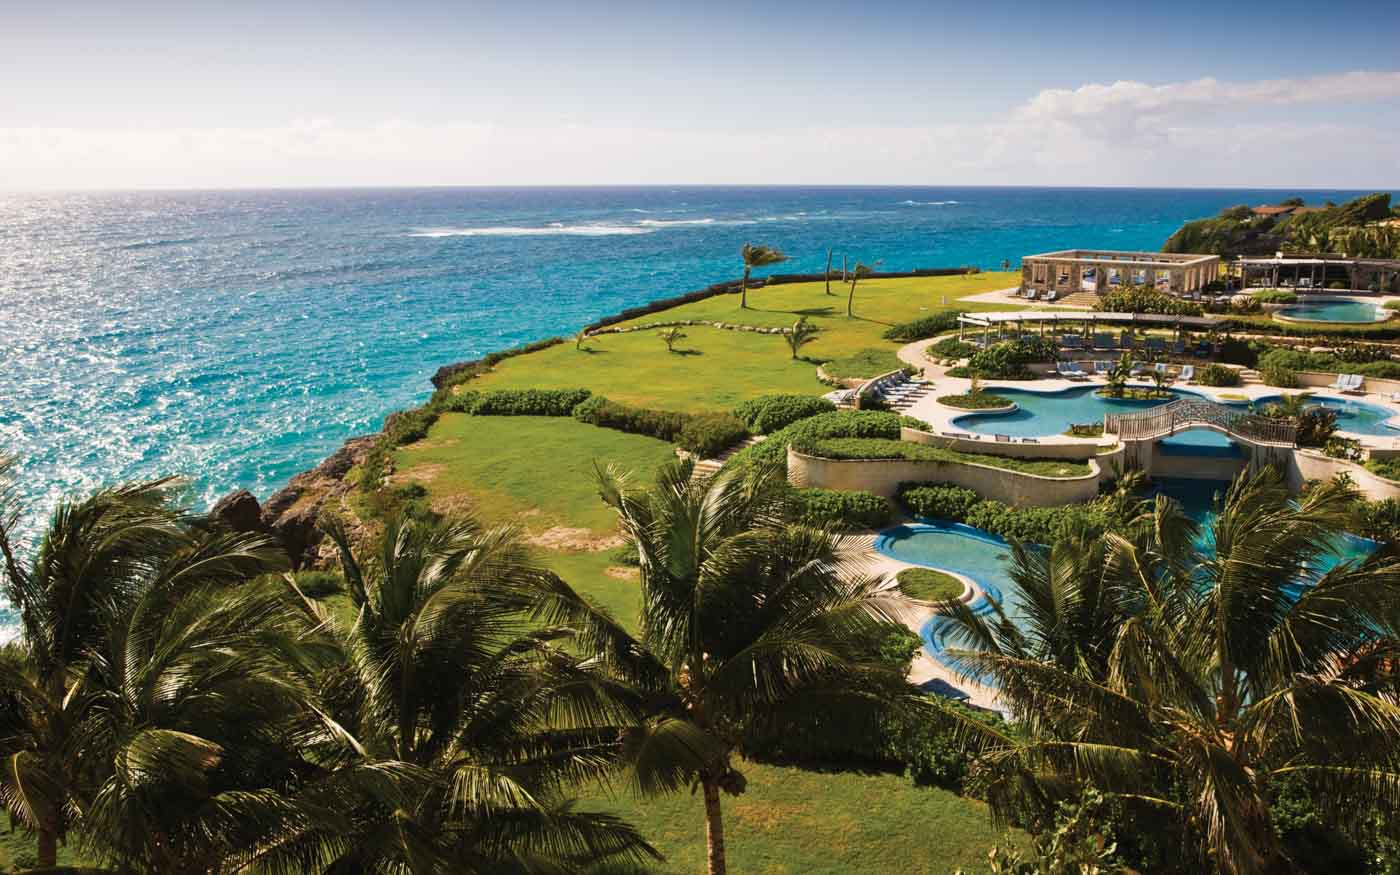 Aerial view of the pool complex overlooking the ocean at Hilton Grand Vacations at The Crane in St. Philip, Barbados.